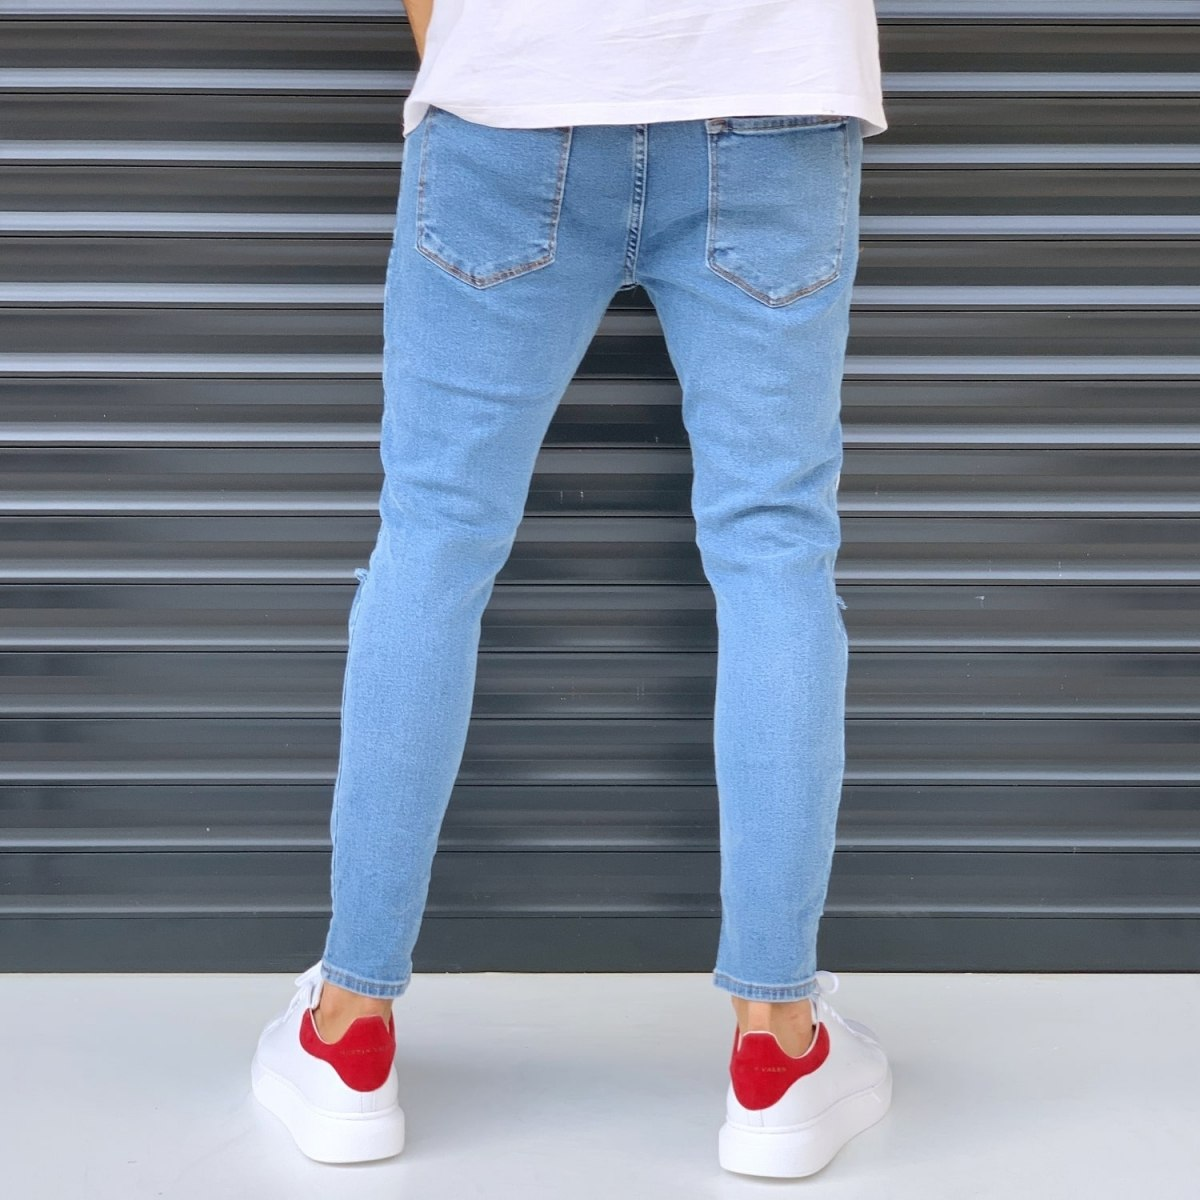 Men's Jeans With Heavy Rips And Patchworks Denim Blue Mv Premium Brand - 3